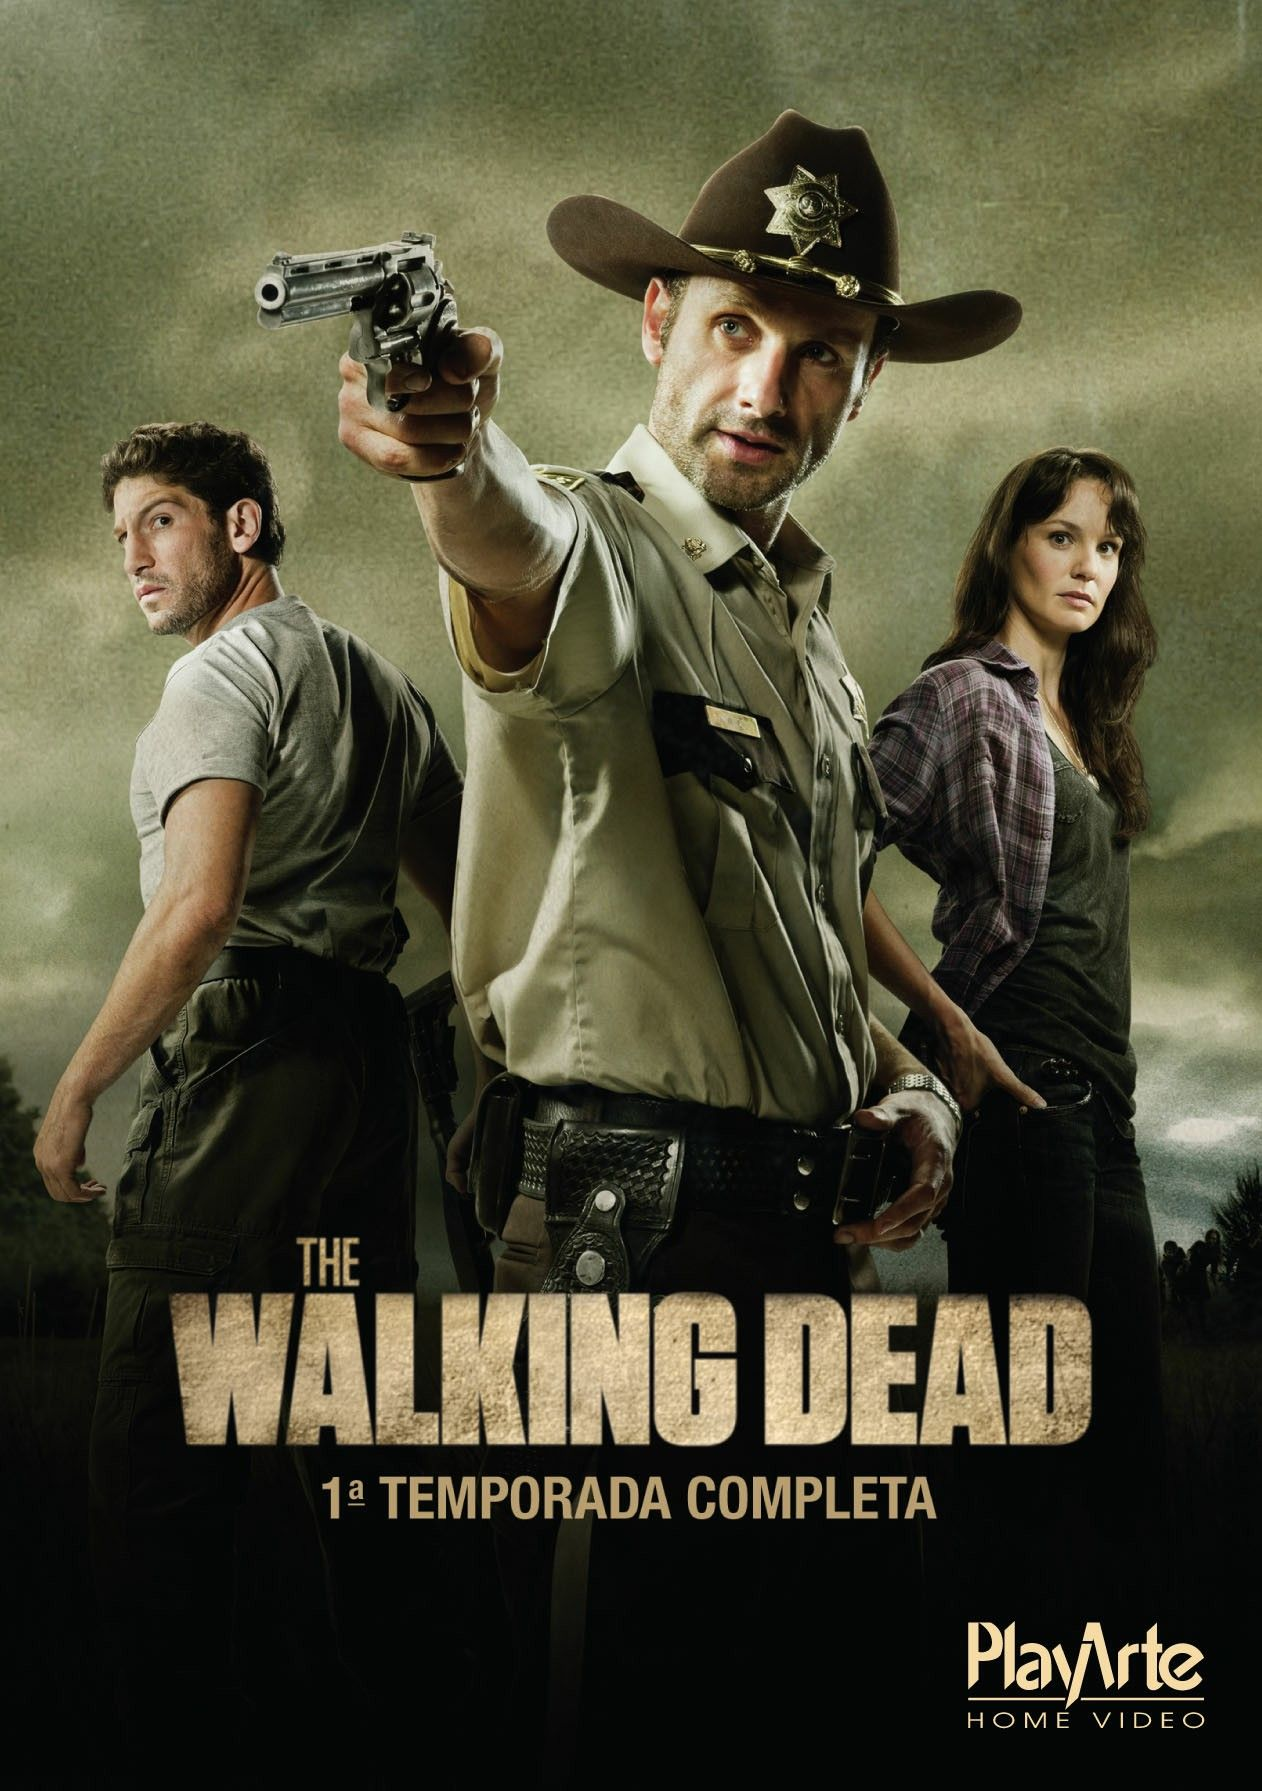 The Walking Dead 2ª Temporada 2011 2012 The Walking Dead